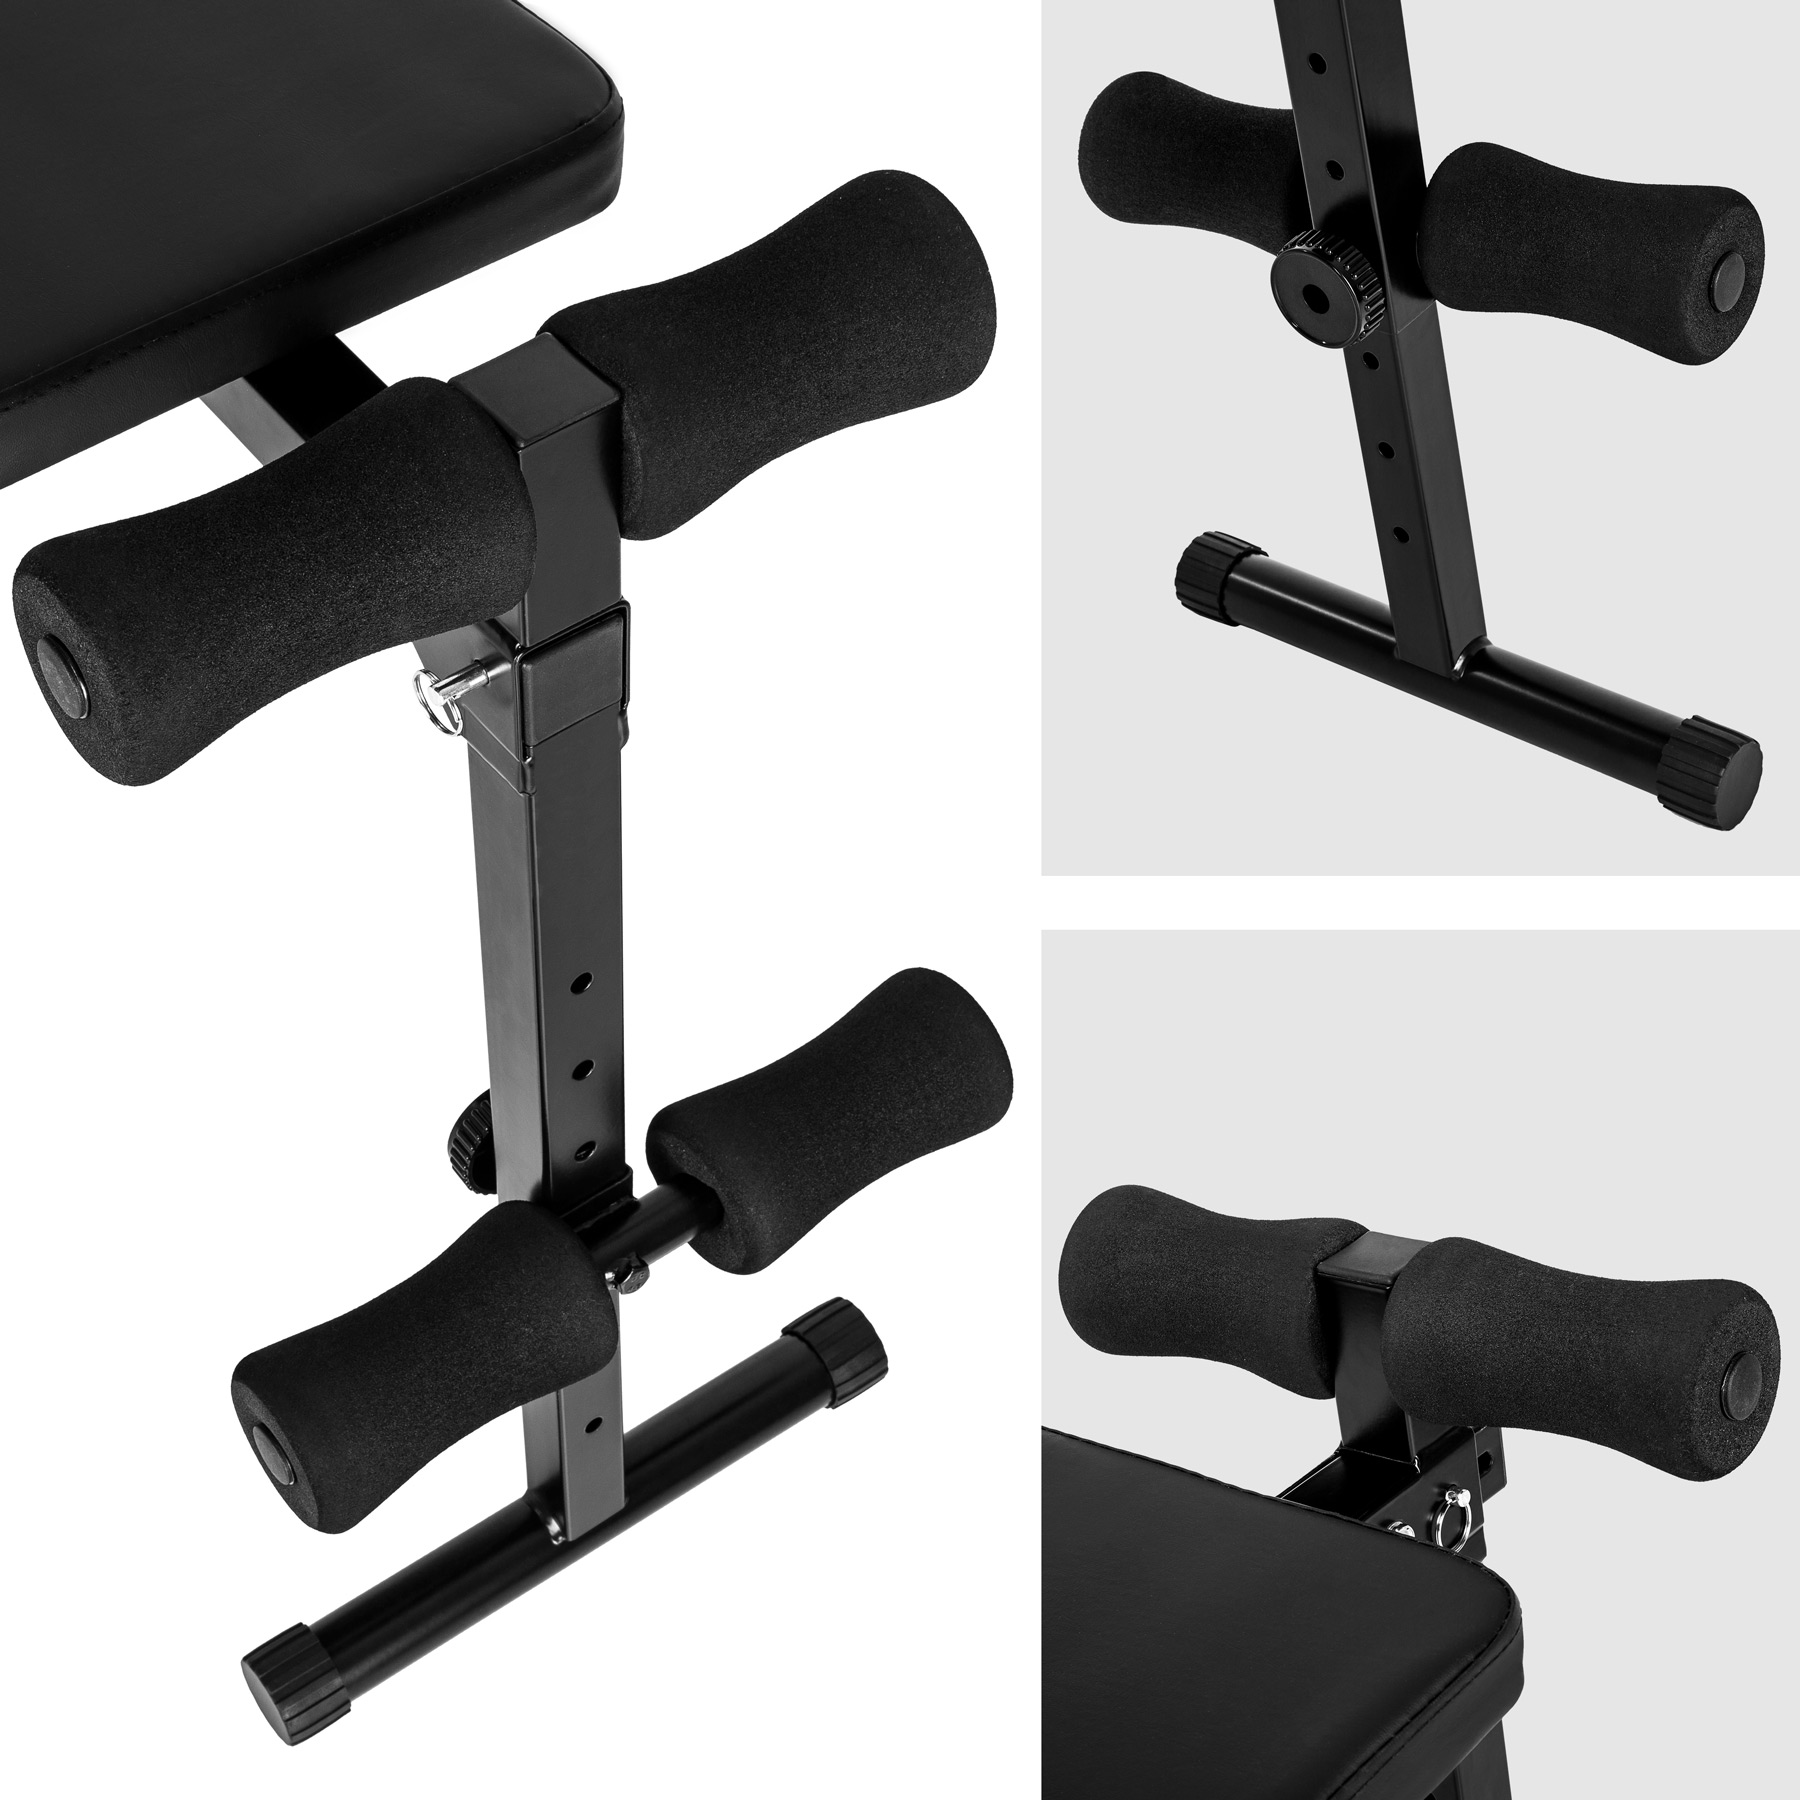 banc de musculation pour muscles abdominaux appareil de fitness sport pliable ebay. Black Bedroom Furniture Sets. Home Design Ideas